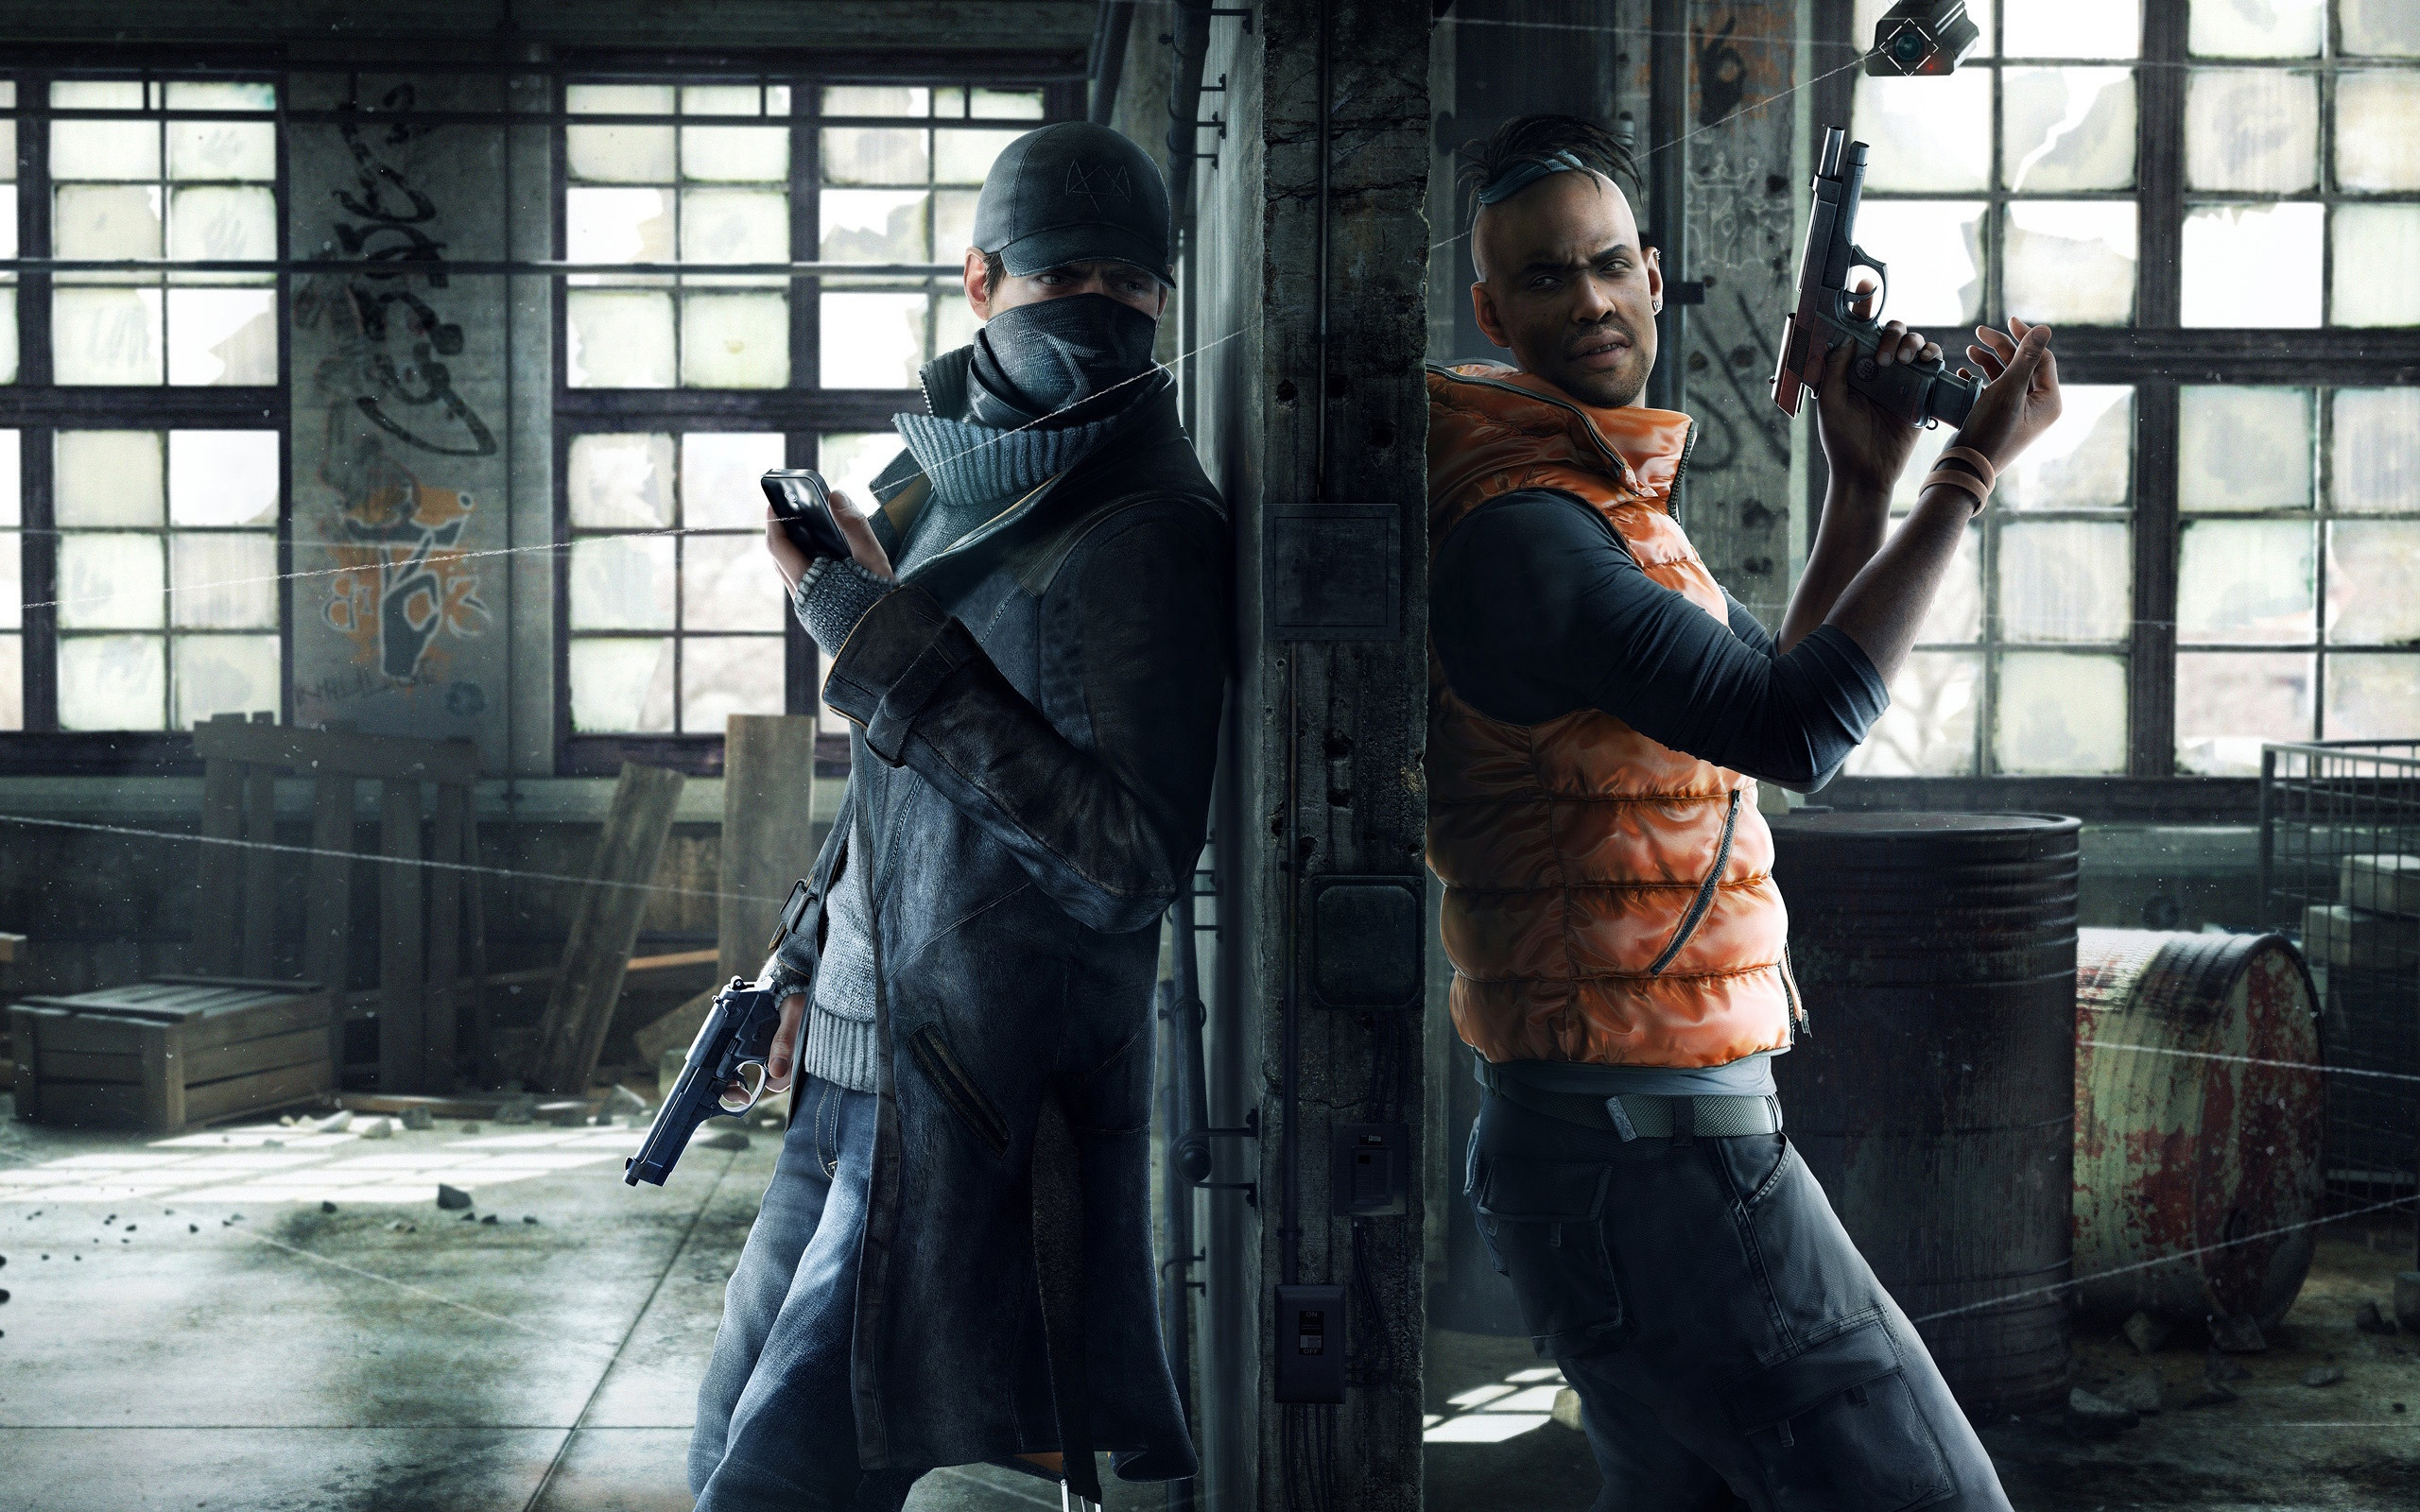 watch dogs 2 wallpapers high quality | download free